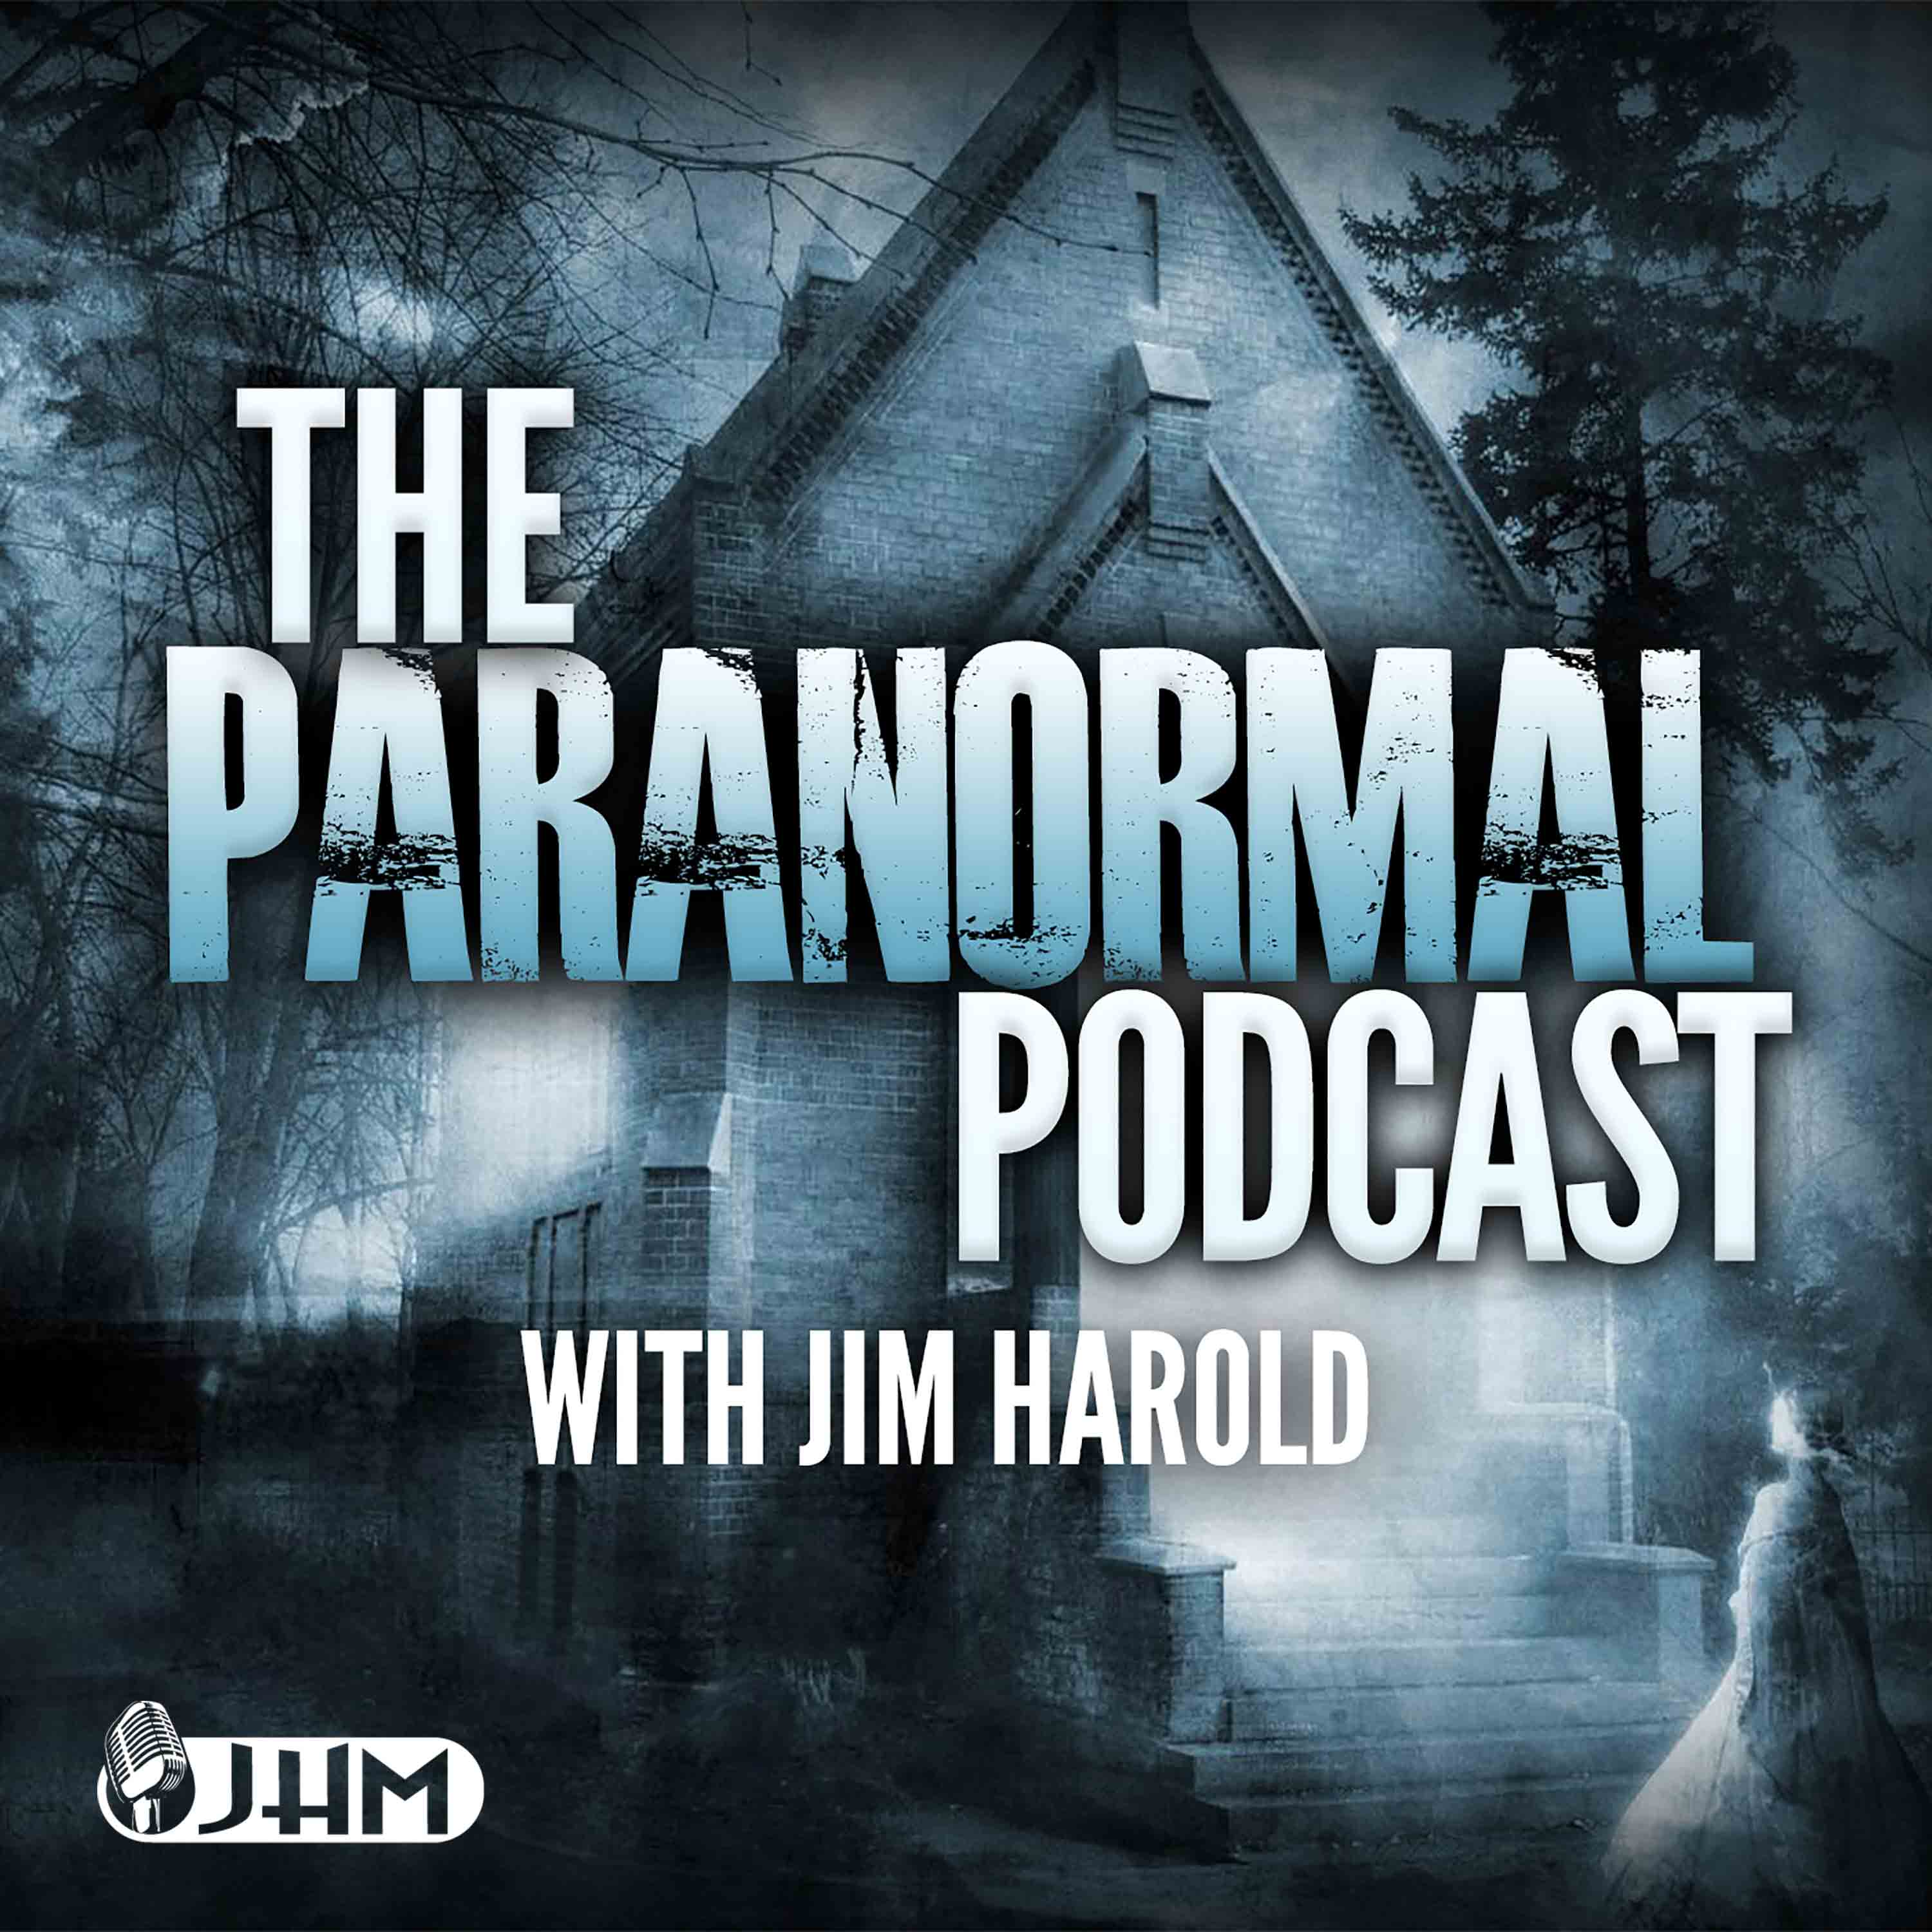 Paranormal Podcast with Jim Harold show art